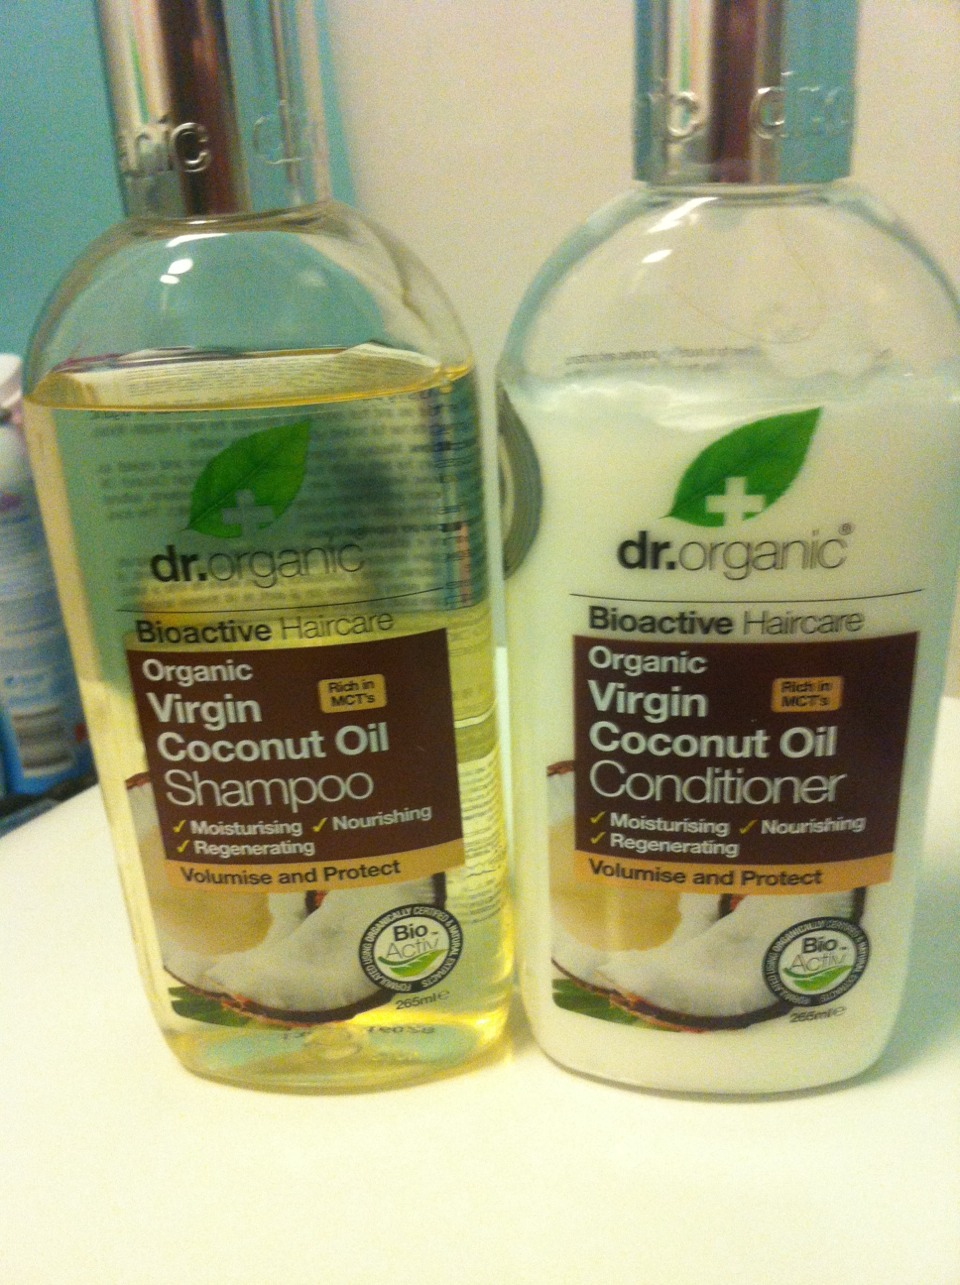 Virgin coconut oil had many uses, instead of putting the actual grease/oil into your hair, using shampoos/conditioners can help just as much and will not cause extra hassle   Dr organic has a number of different shampoos and conditions, virgin coconut oil helps with your hair a fair bit more.